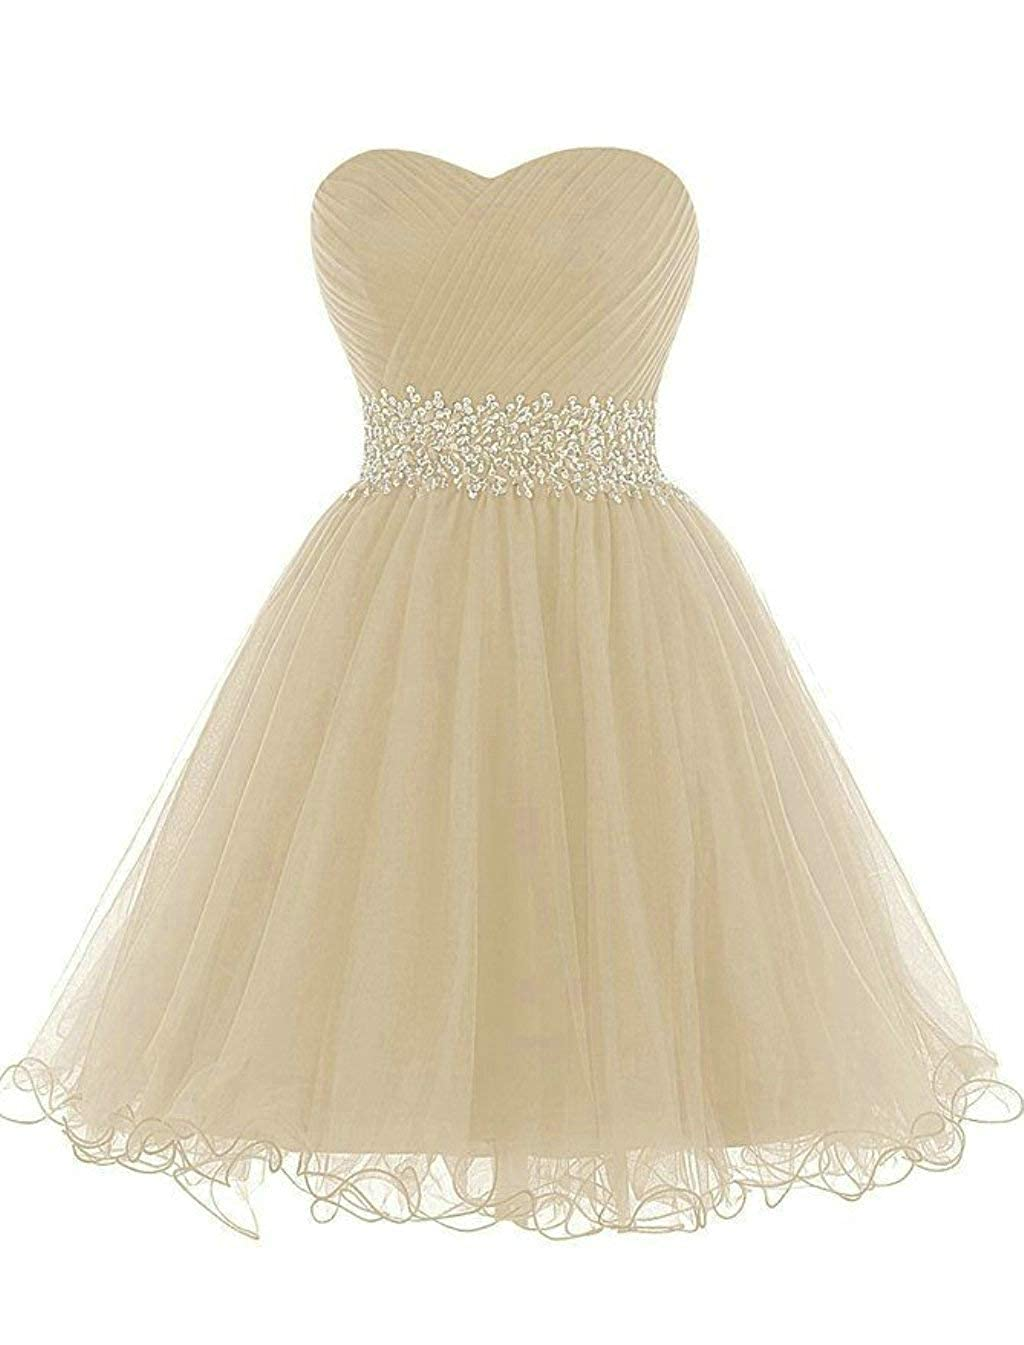 Champagne Vantexi Women's Beaded Tulle Short Prom Bridesmaid Dress Formal Party Gown